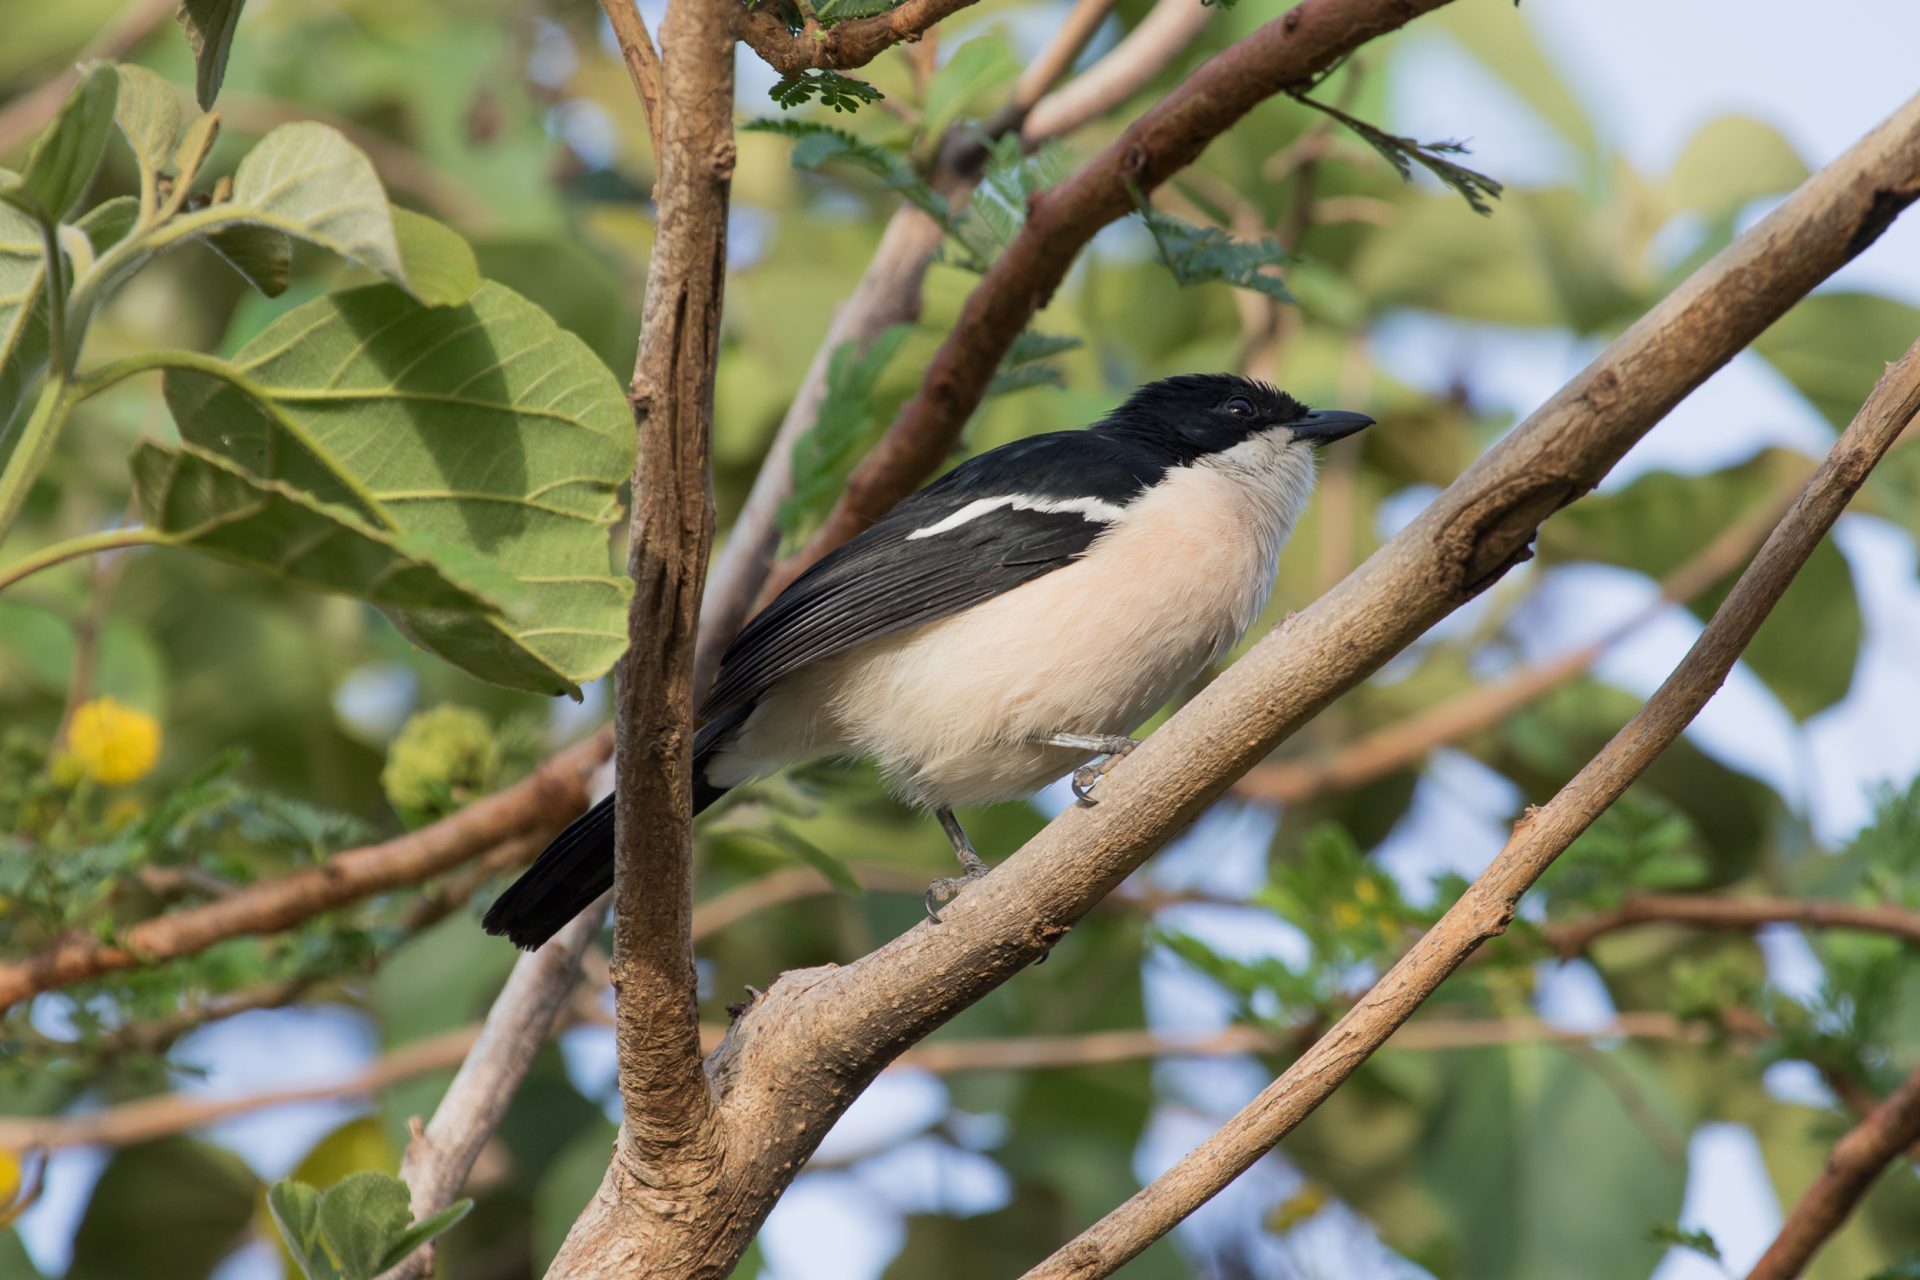 The endemic Ethiopian Boubou near Lake Ziway in the Rift Valley